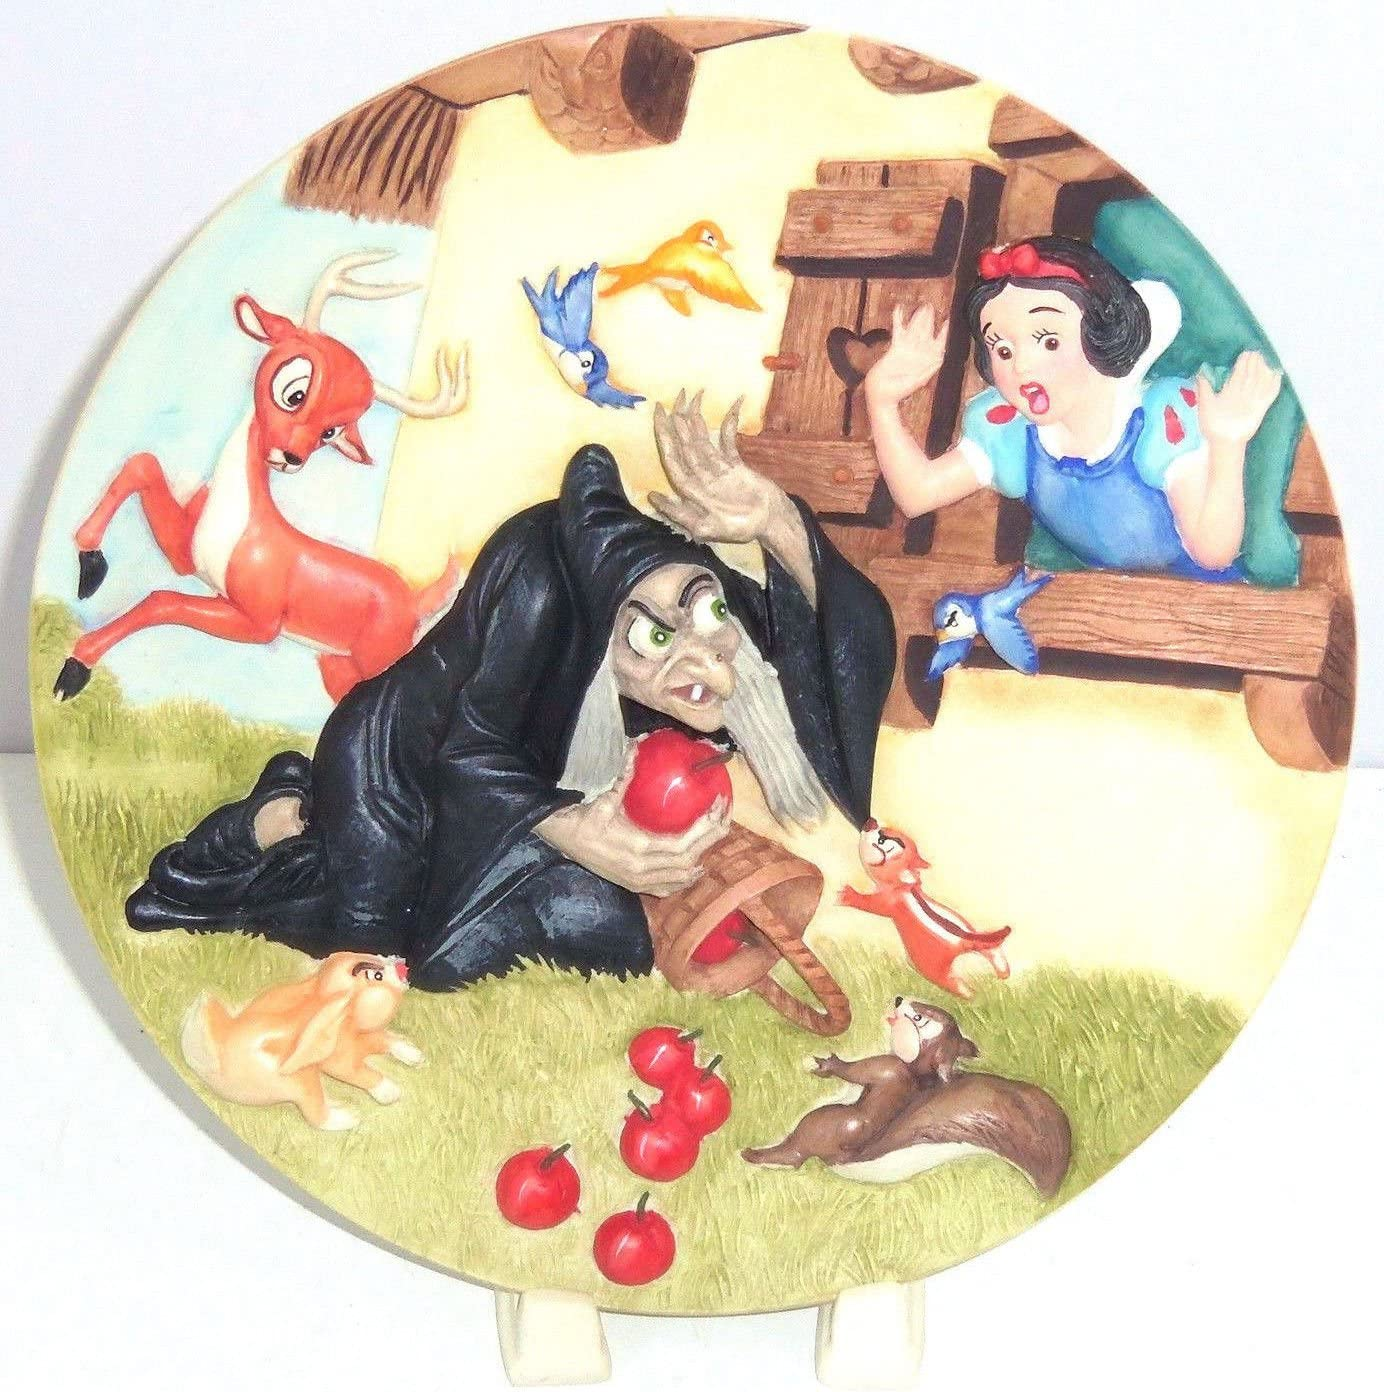 Free Opening large release sale Shipping Cheap Bargain Gift Disney Store Snow White Collector Plate Seve Apples Wicked Queen